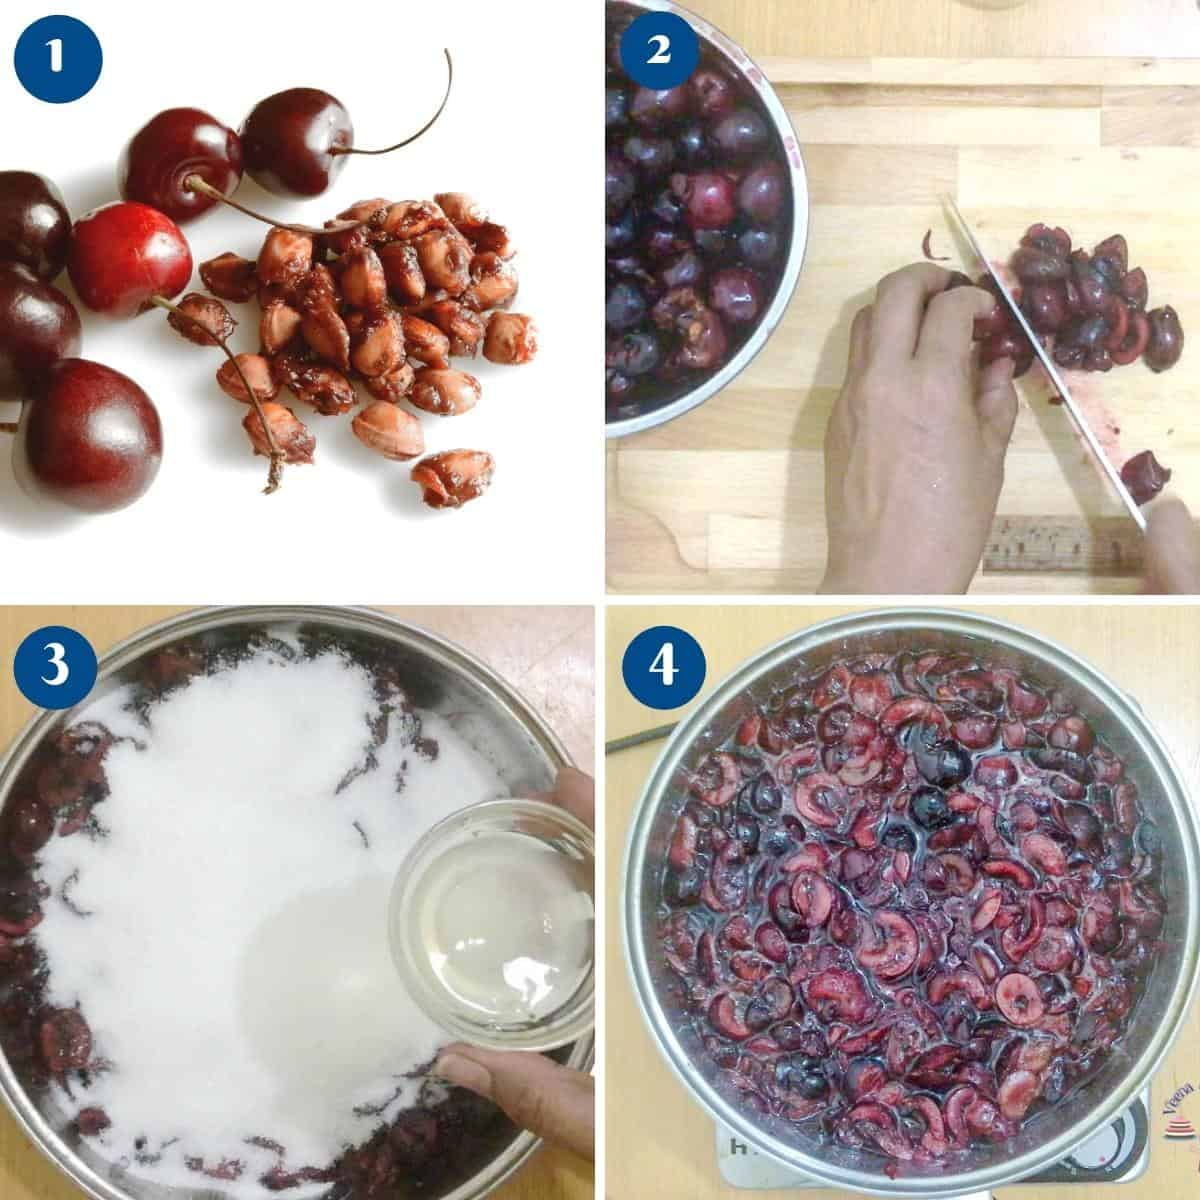 Progress pictures for cherry jam without pectin.